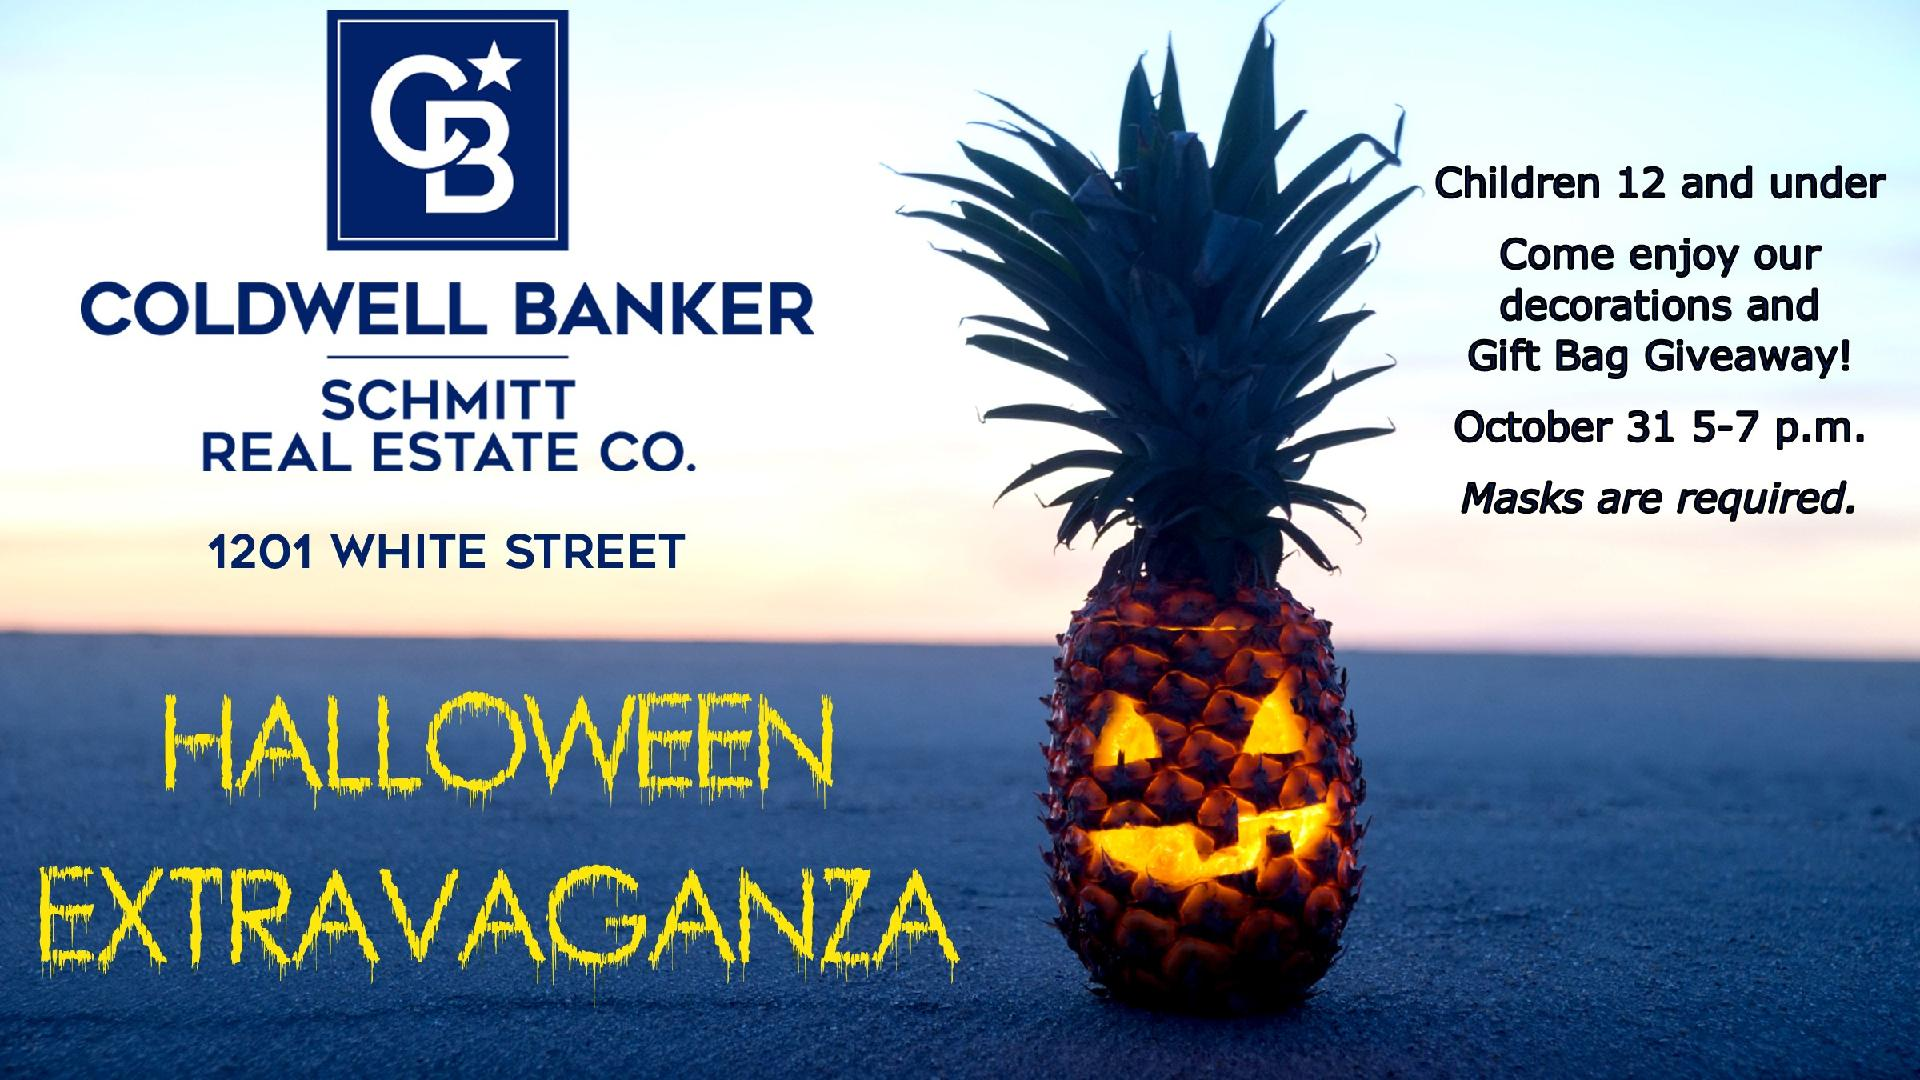 Coldwell Banker Schmitt presents a Halloween Extravaganza at our Key West location Main Photo